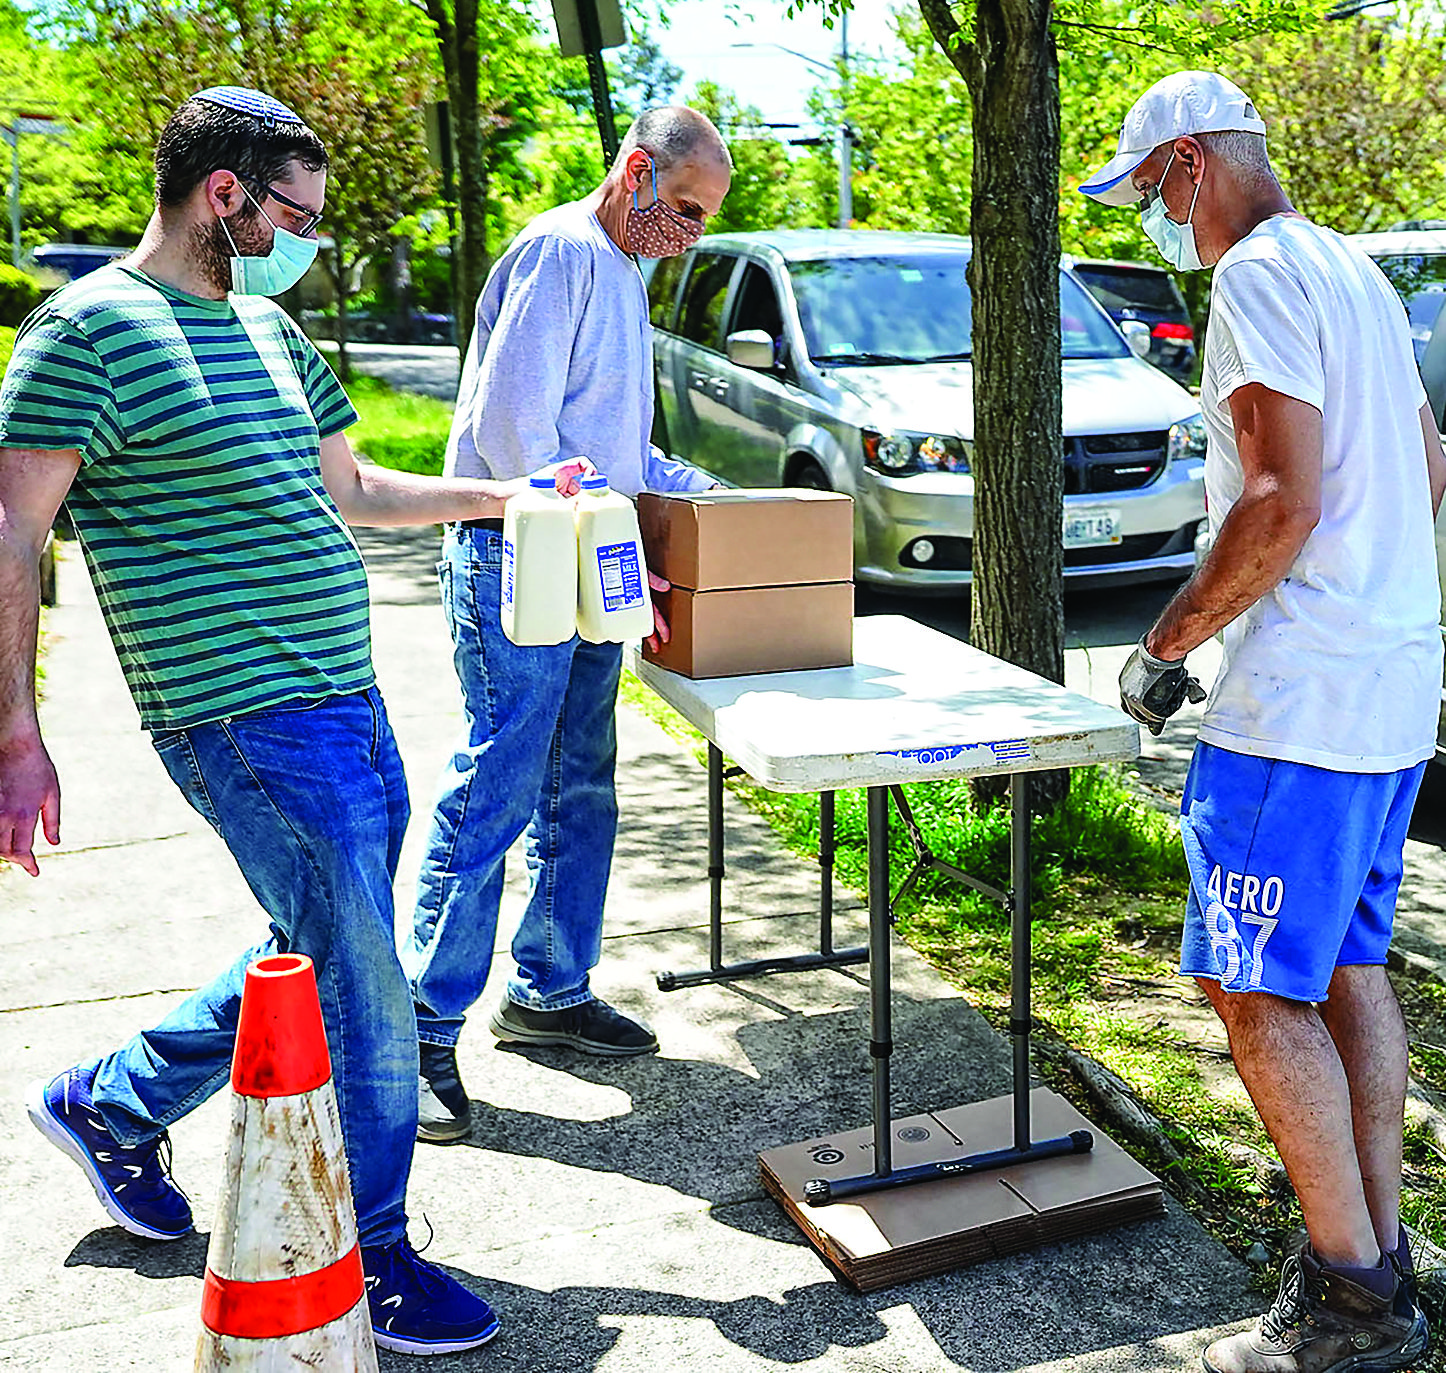 On a recent Friday, cars line up outside of Congregation Beth Sholom in Providence for a free Kosher food program program aimed at feeding children under age 18 while volunteers bring out milk and boxed meals..